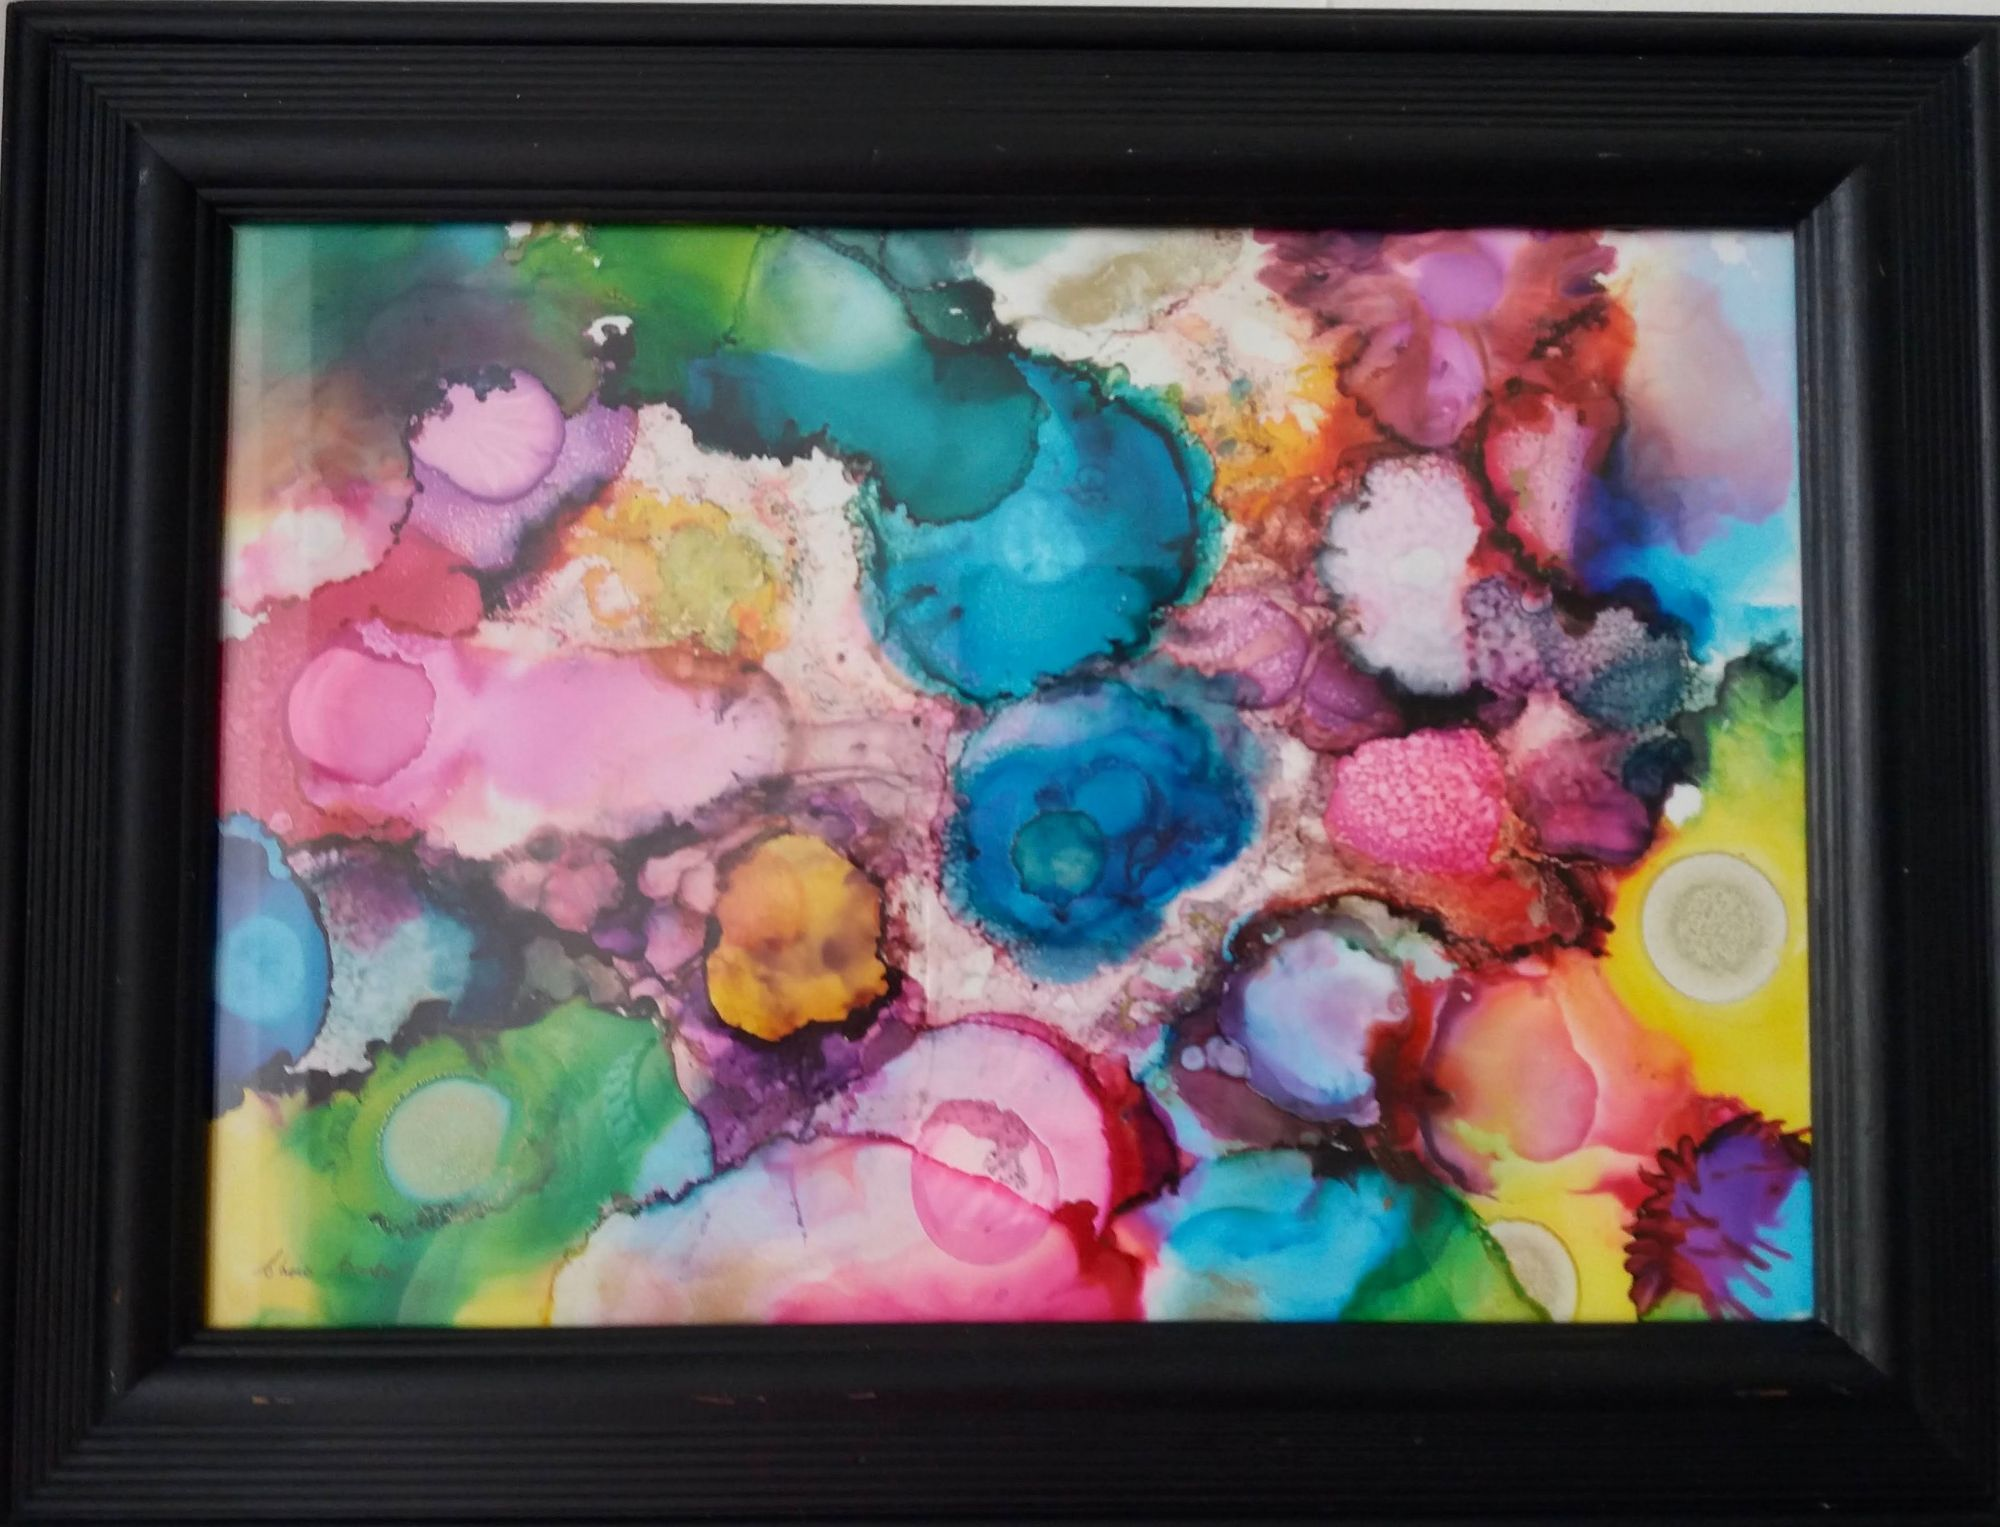 Burst of Colour  ________________________________ ink on Yupo paper, black frame  (38cm x 29cm)           £20